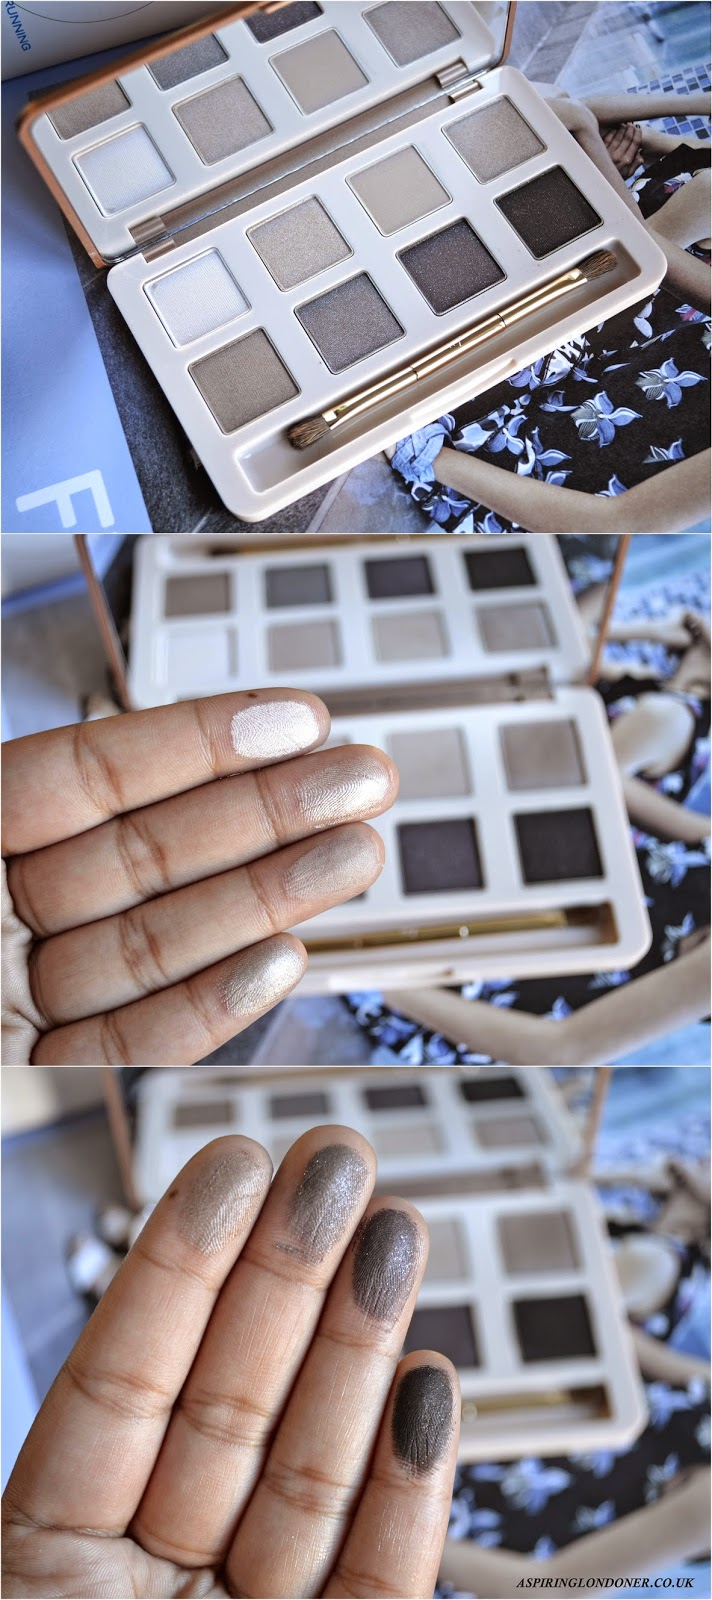 No7 Mini Eye Palette Swatches Spring 2015 - Aspiring Londoner